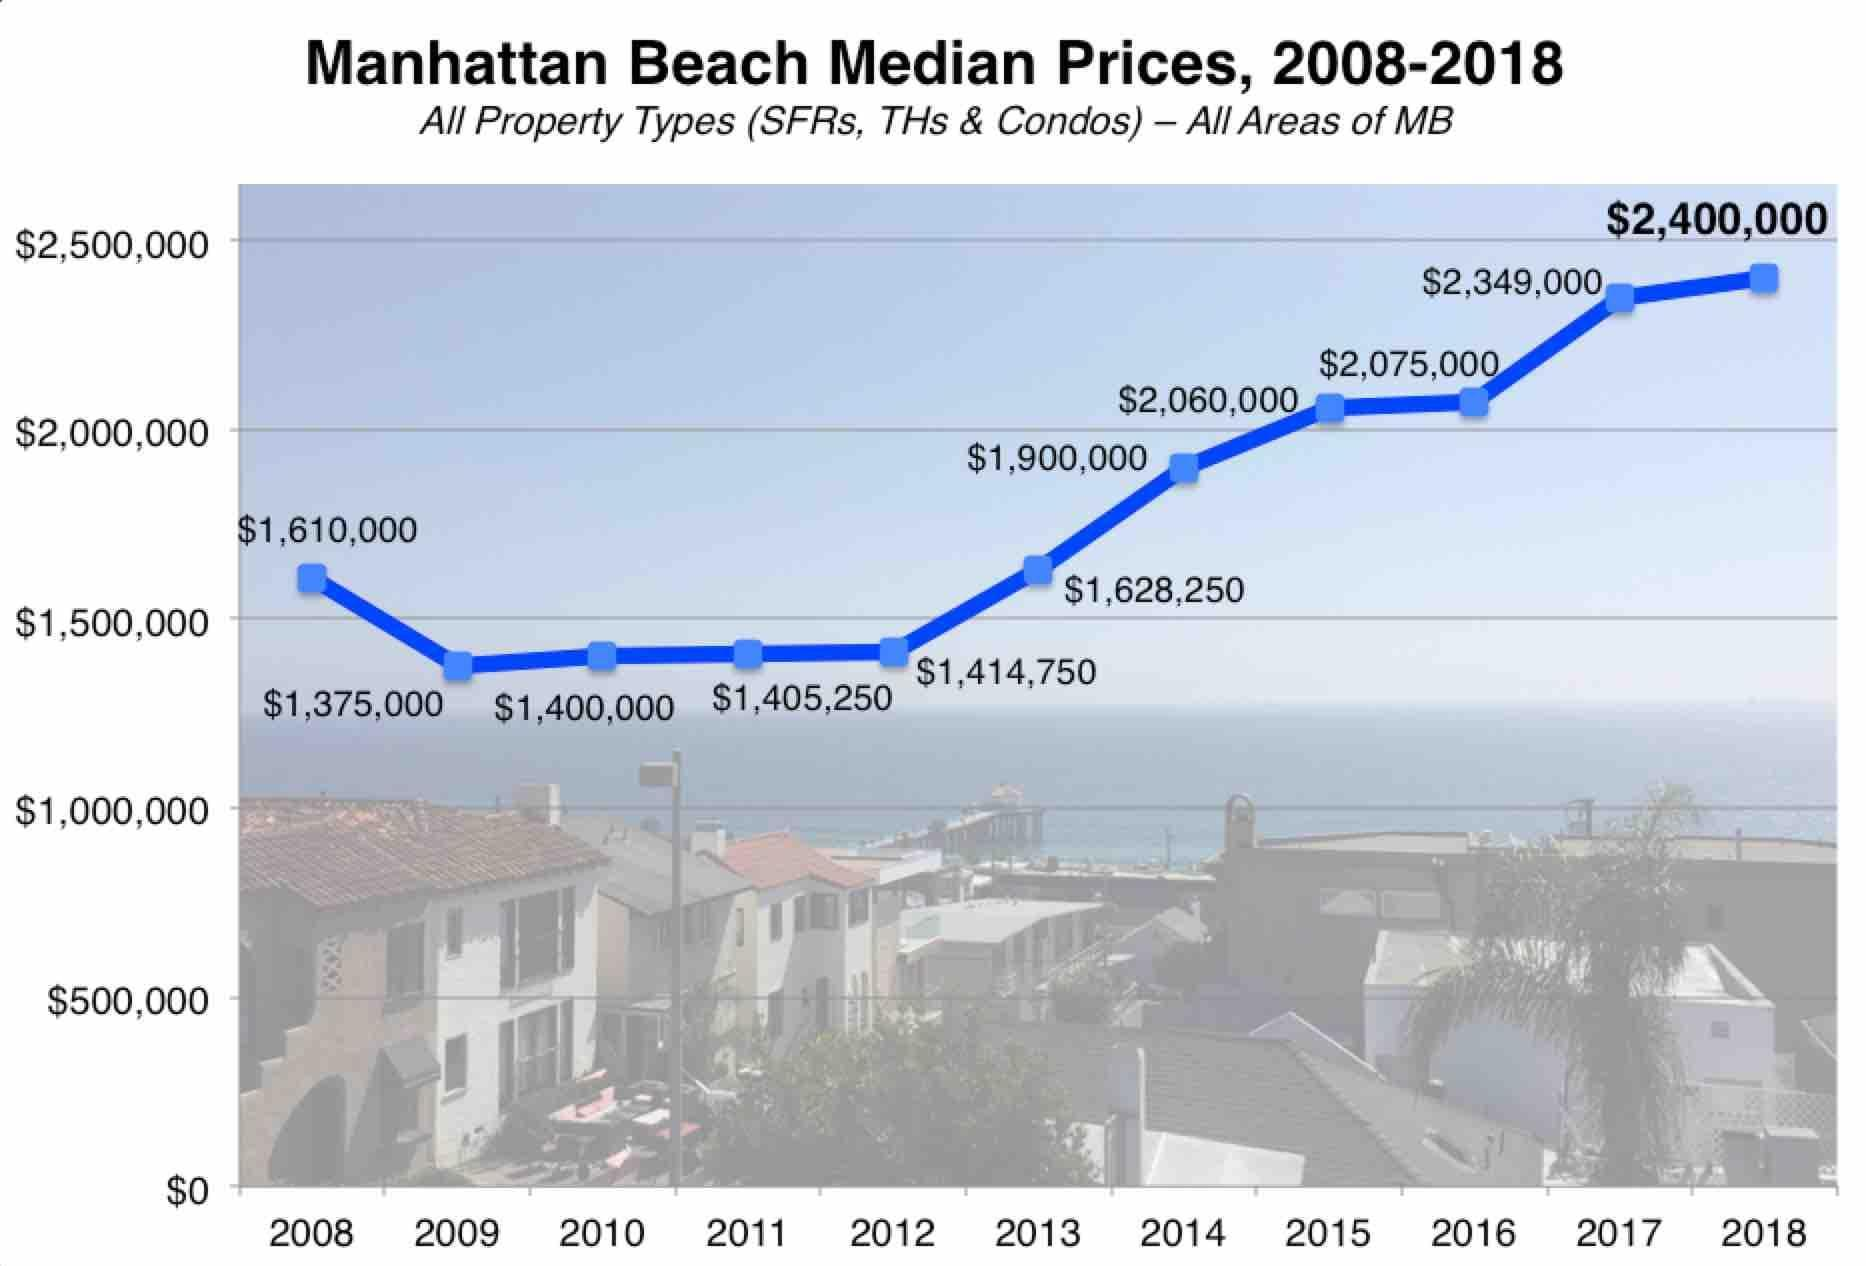 manhattan-beach-median-price-2018